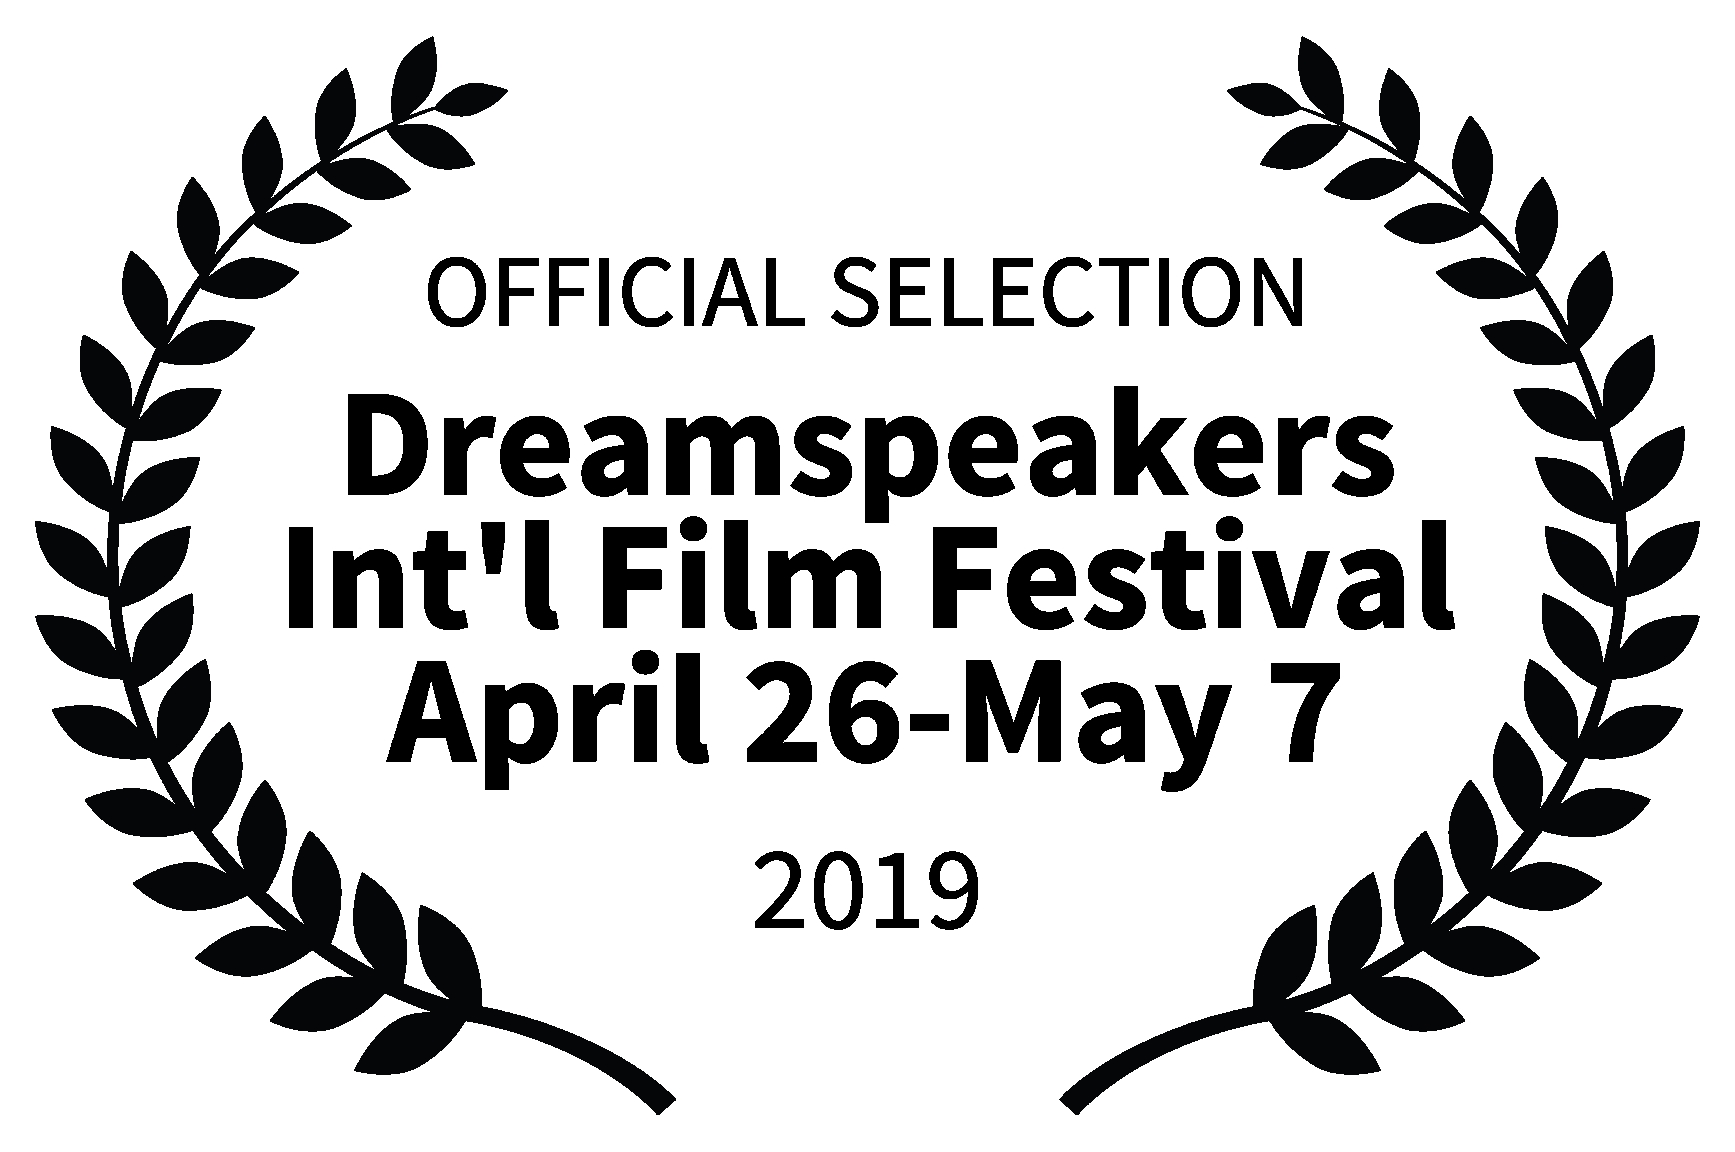 OFFICIAL SELECTION - Dreamspeakers Intl Film Festival April 26-May 7 - 2019